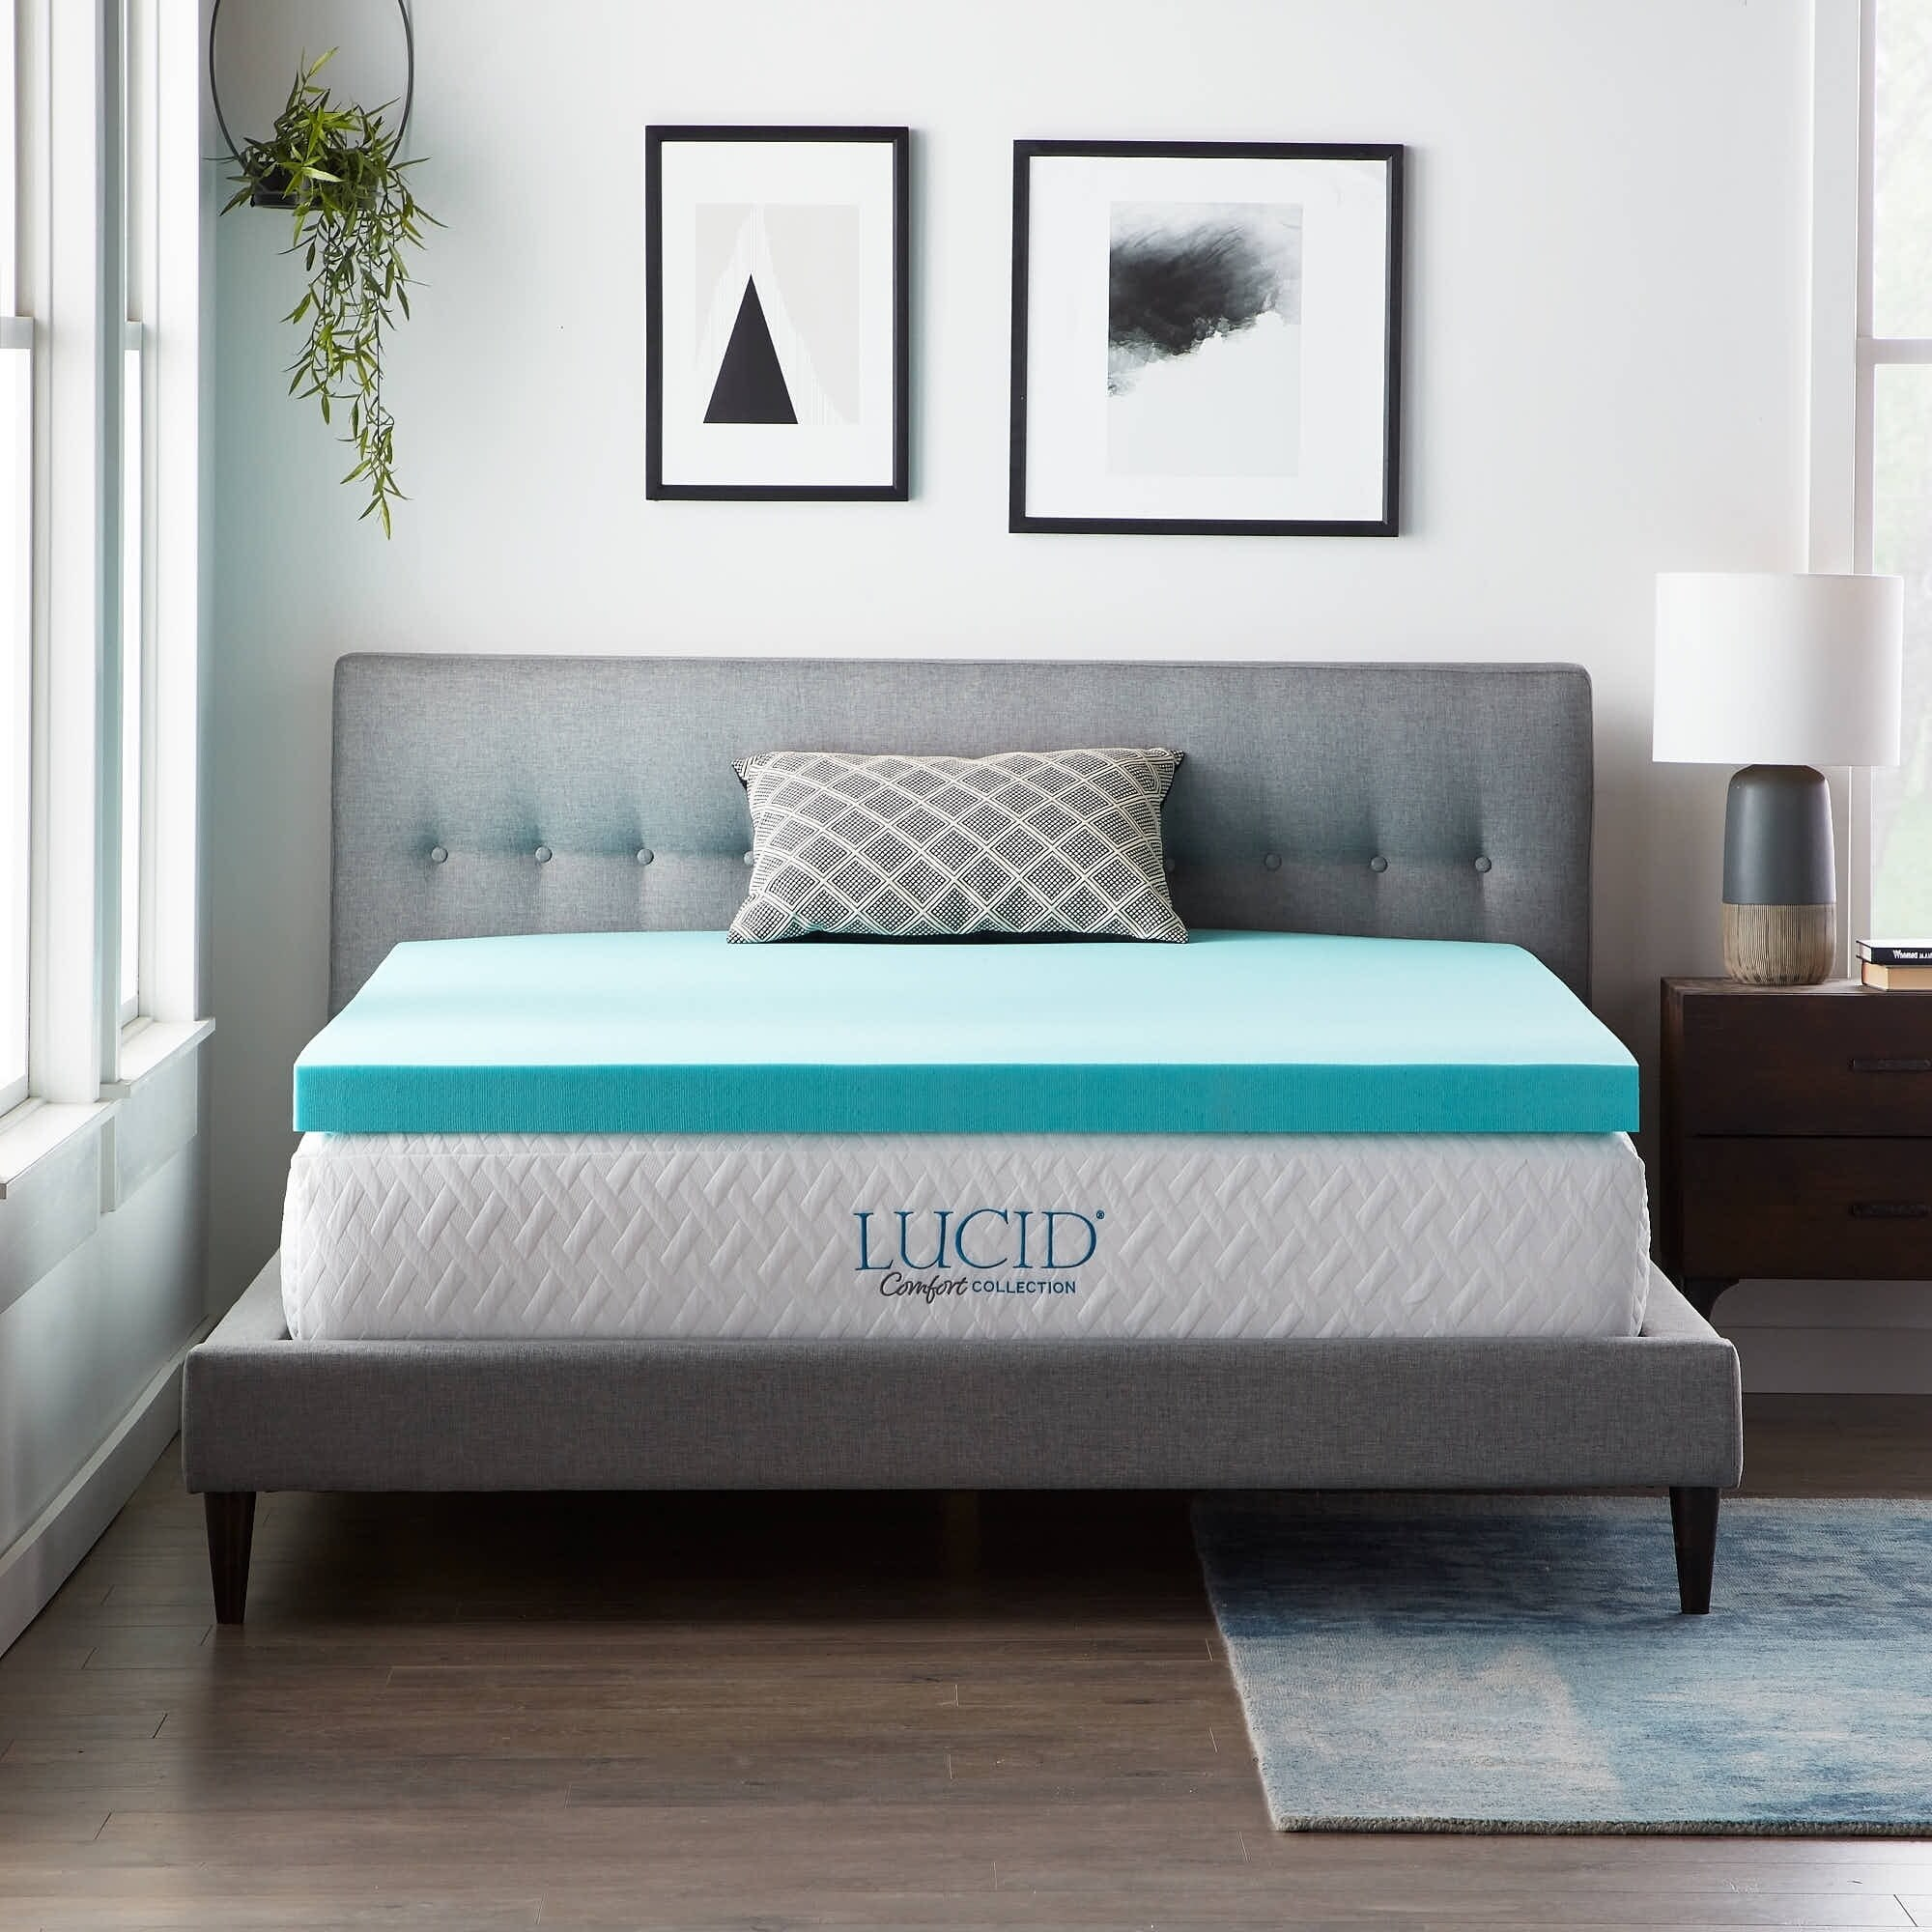 Shop Lucid Comfort Collection 3 Inch Gel Memory Foam Topper